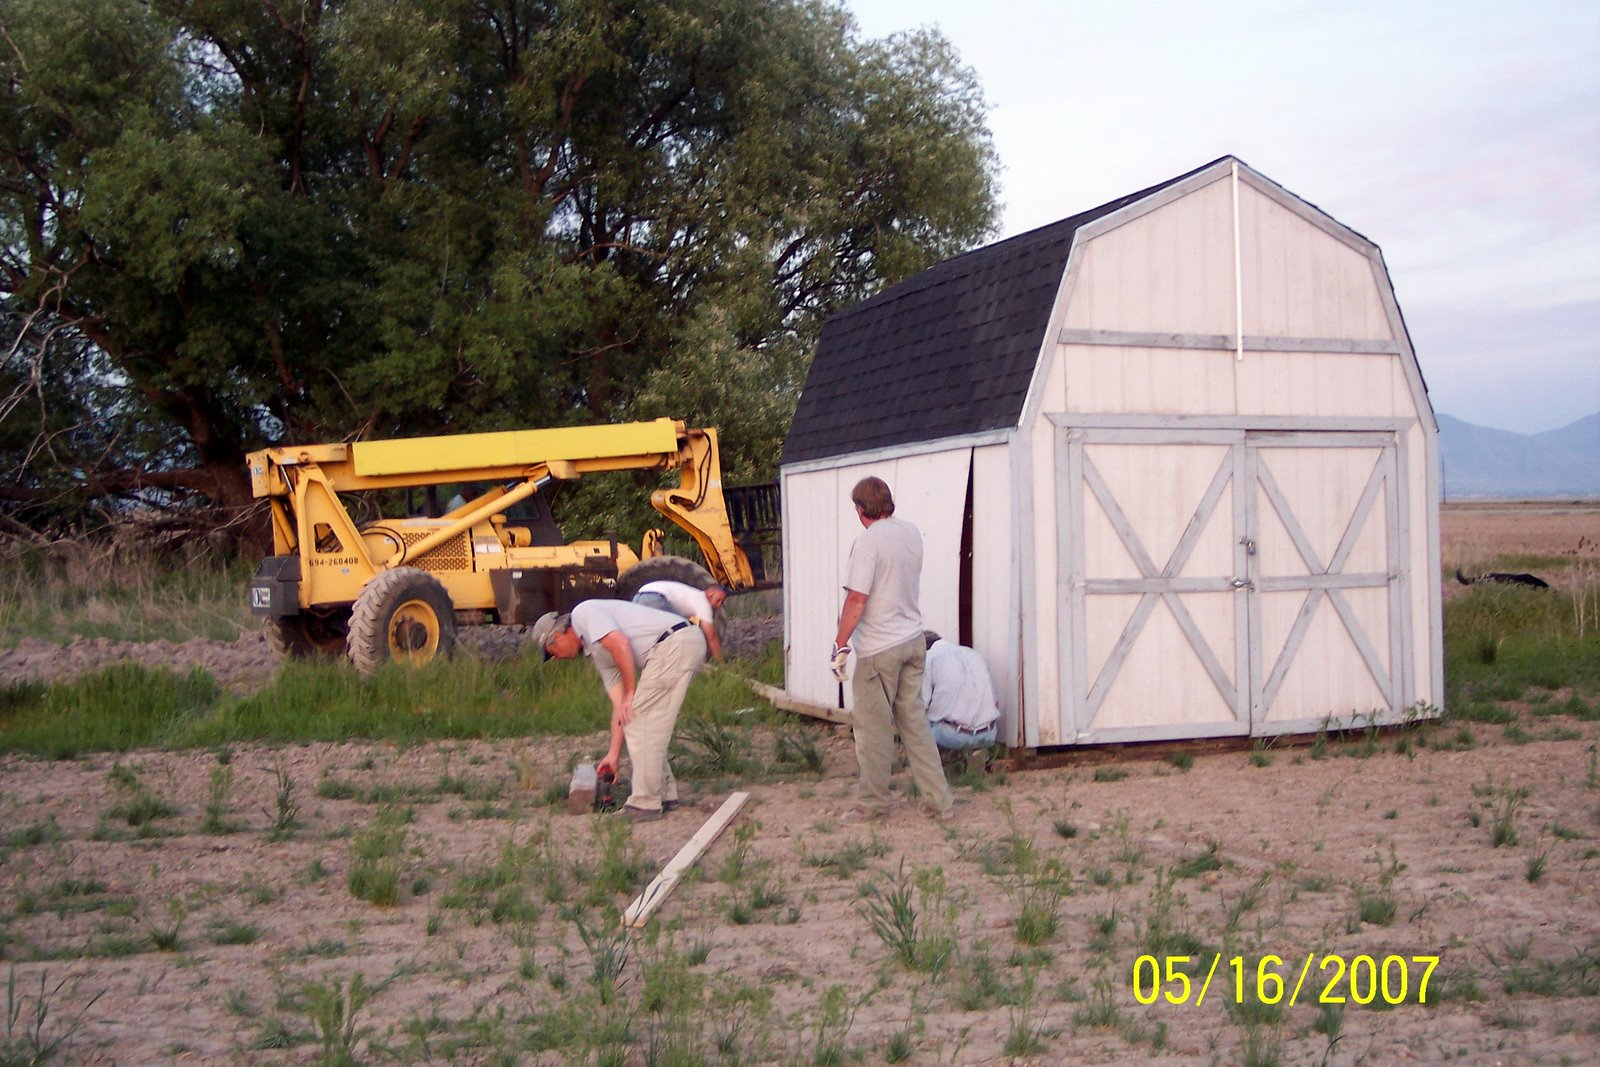 NEW LOCATION FOR SHED ALONG EAST PROPERTY LINE.